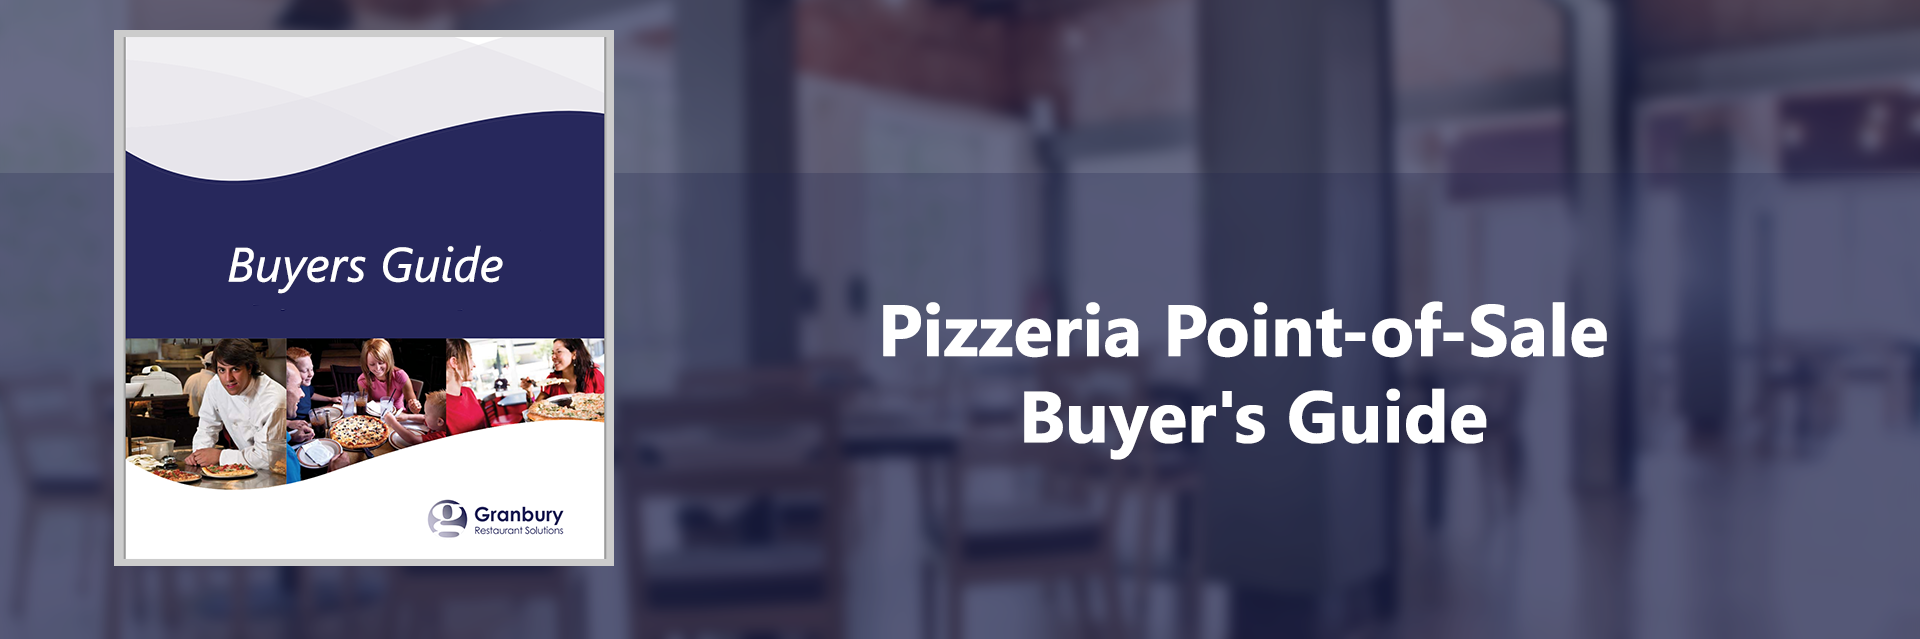 Pizza Point-of-Sale